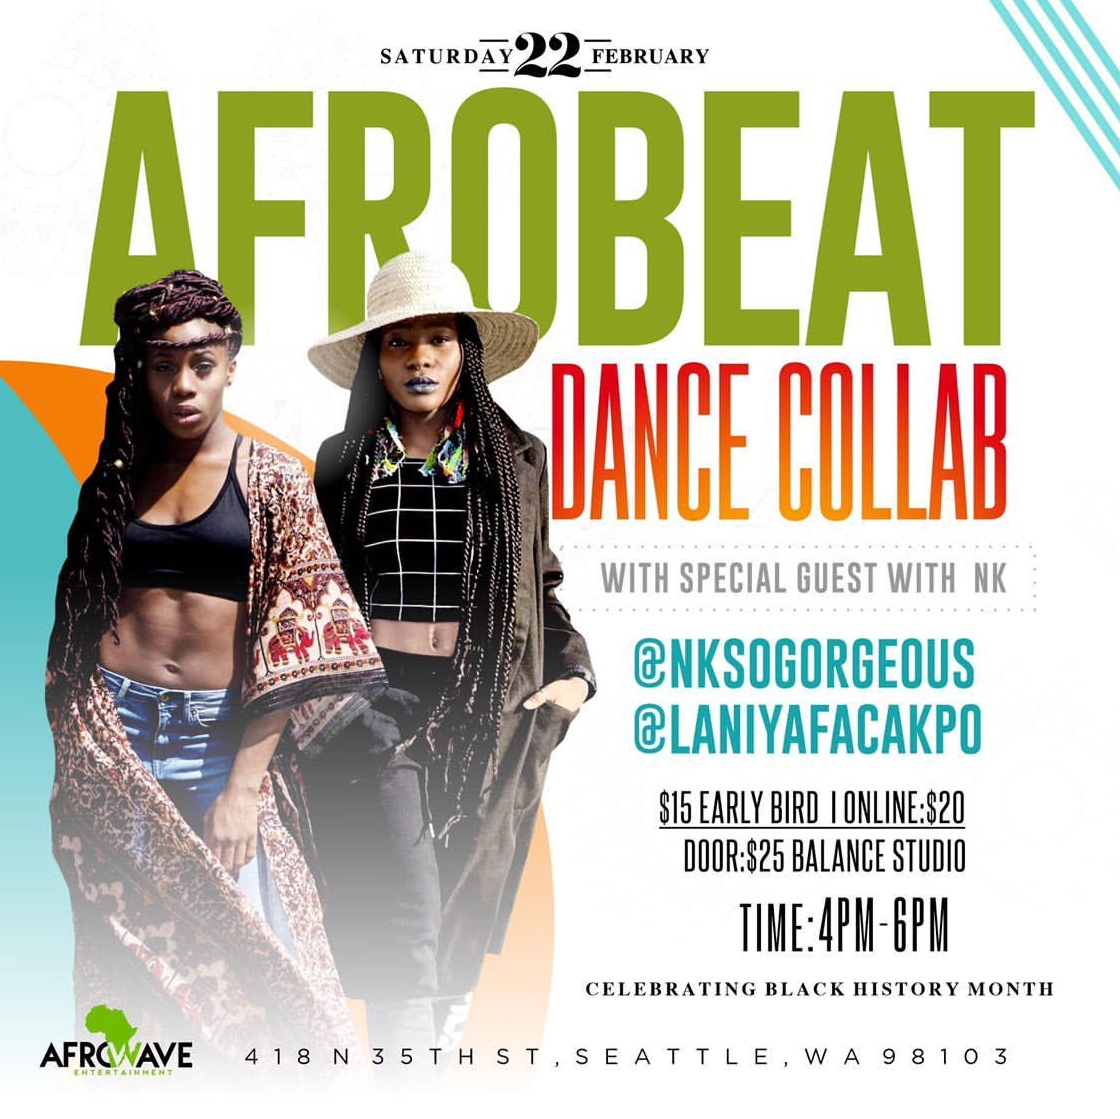 Afrobeat Dance Collab with Special Guest NK